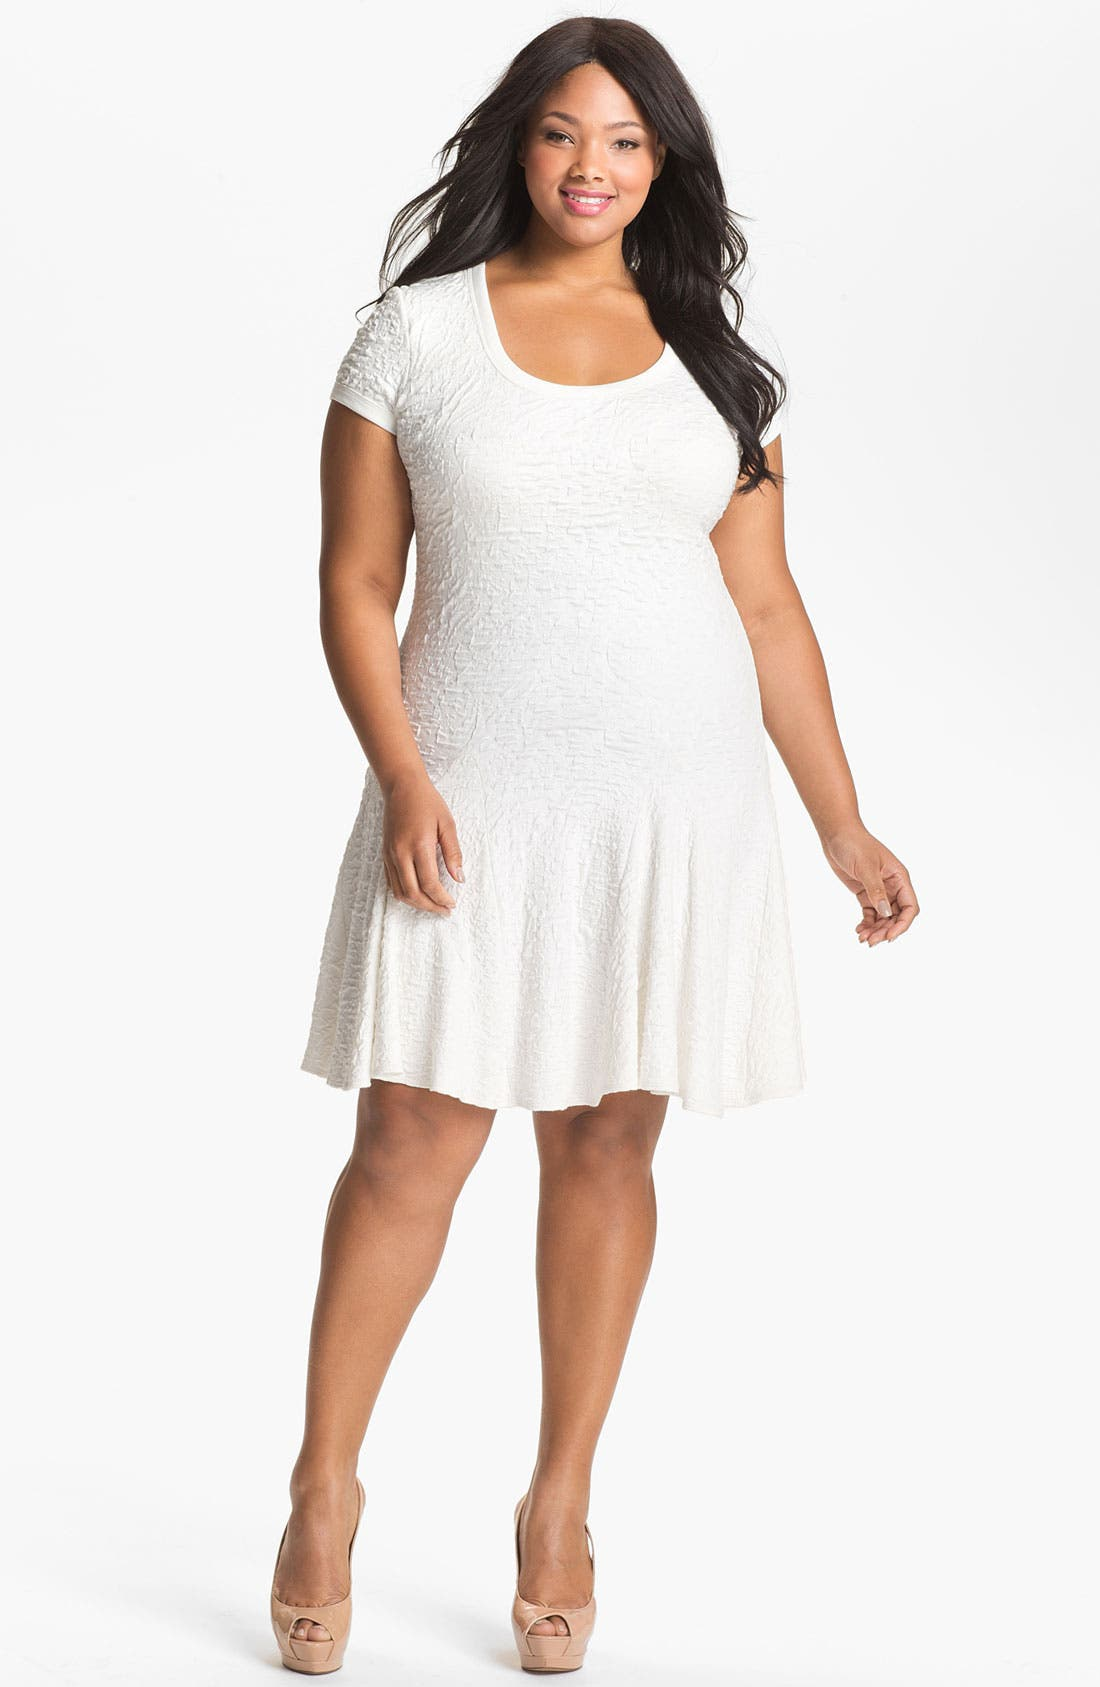 Alternate Image 1 Selected - A.B.S. by Allen Schwartz Textured Drop Waist Dress (Plus Size) (Online Only)